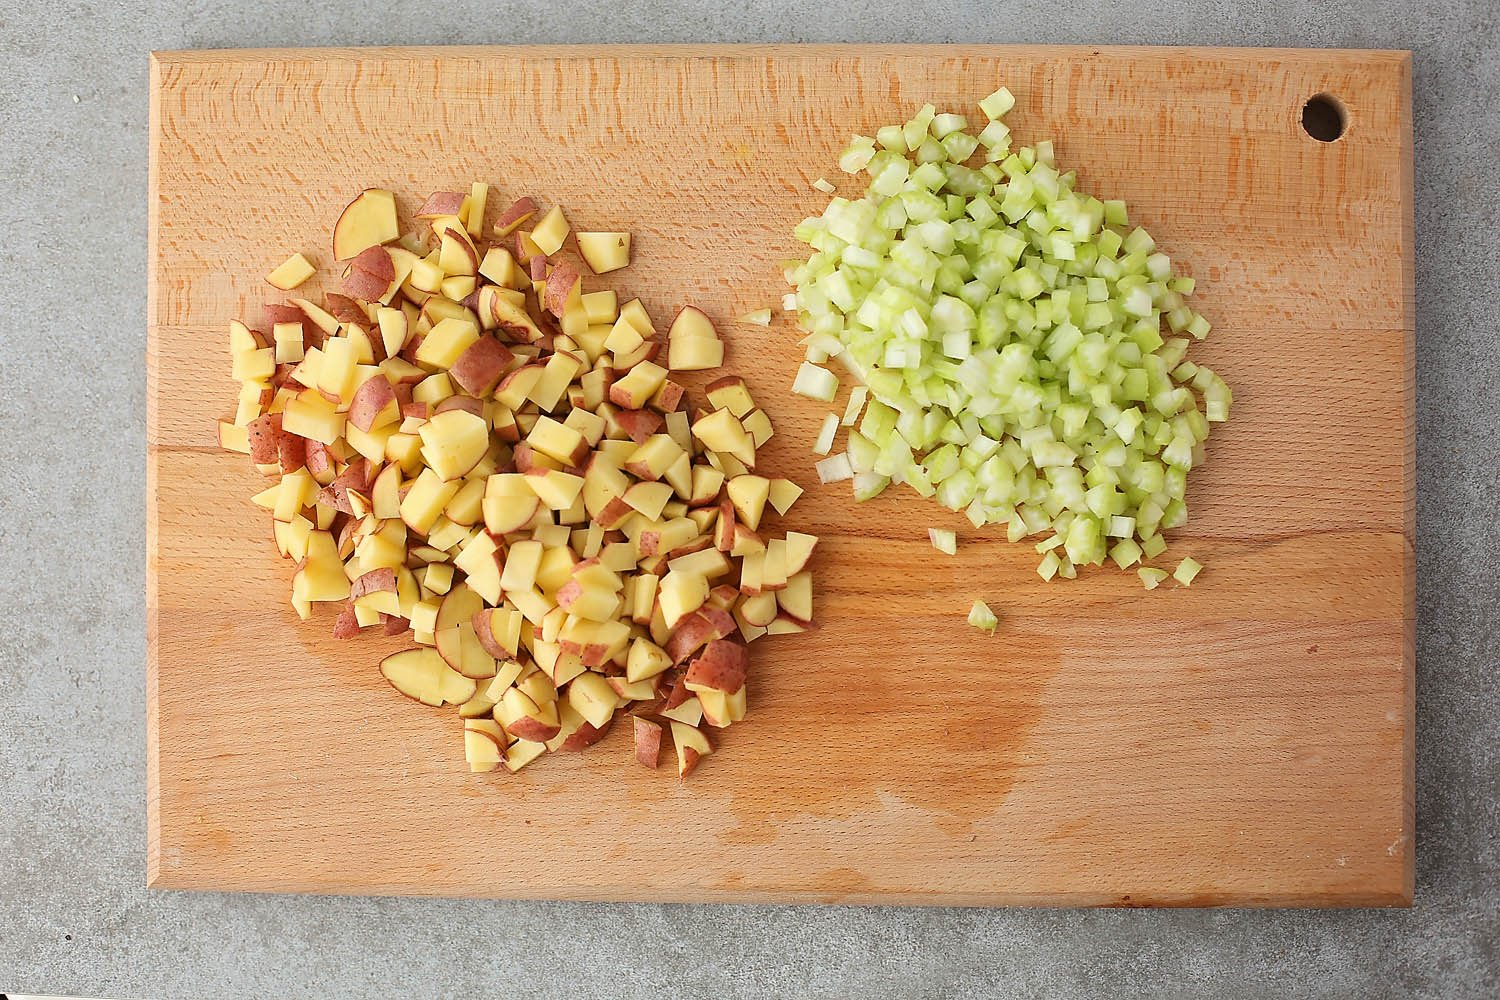 cutting board with diced potatoes and celery